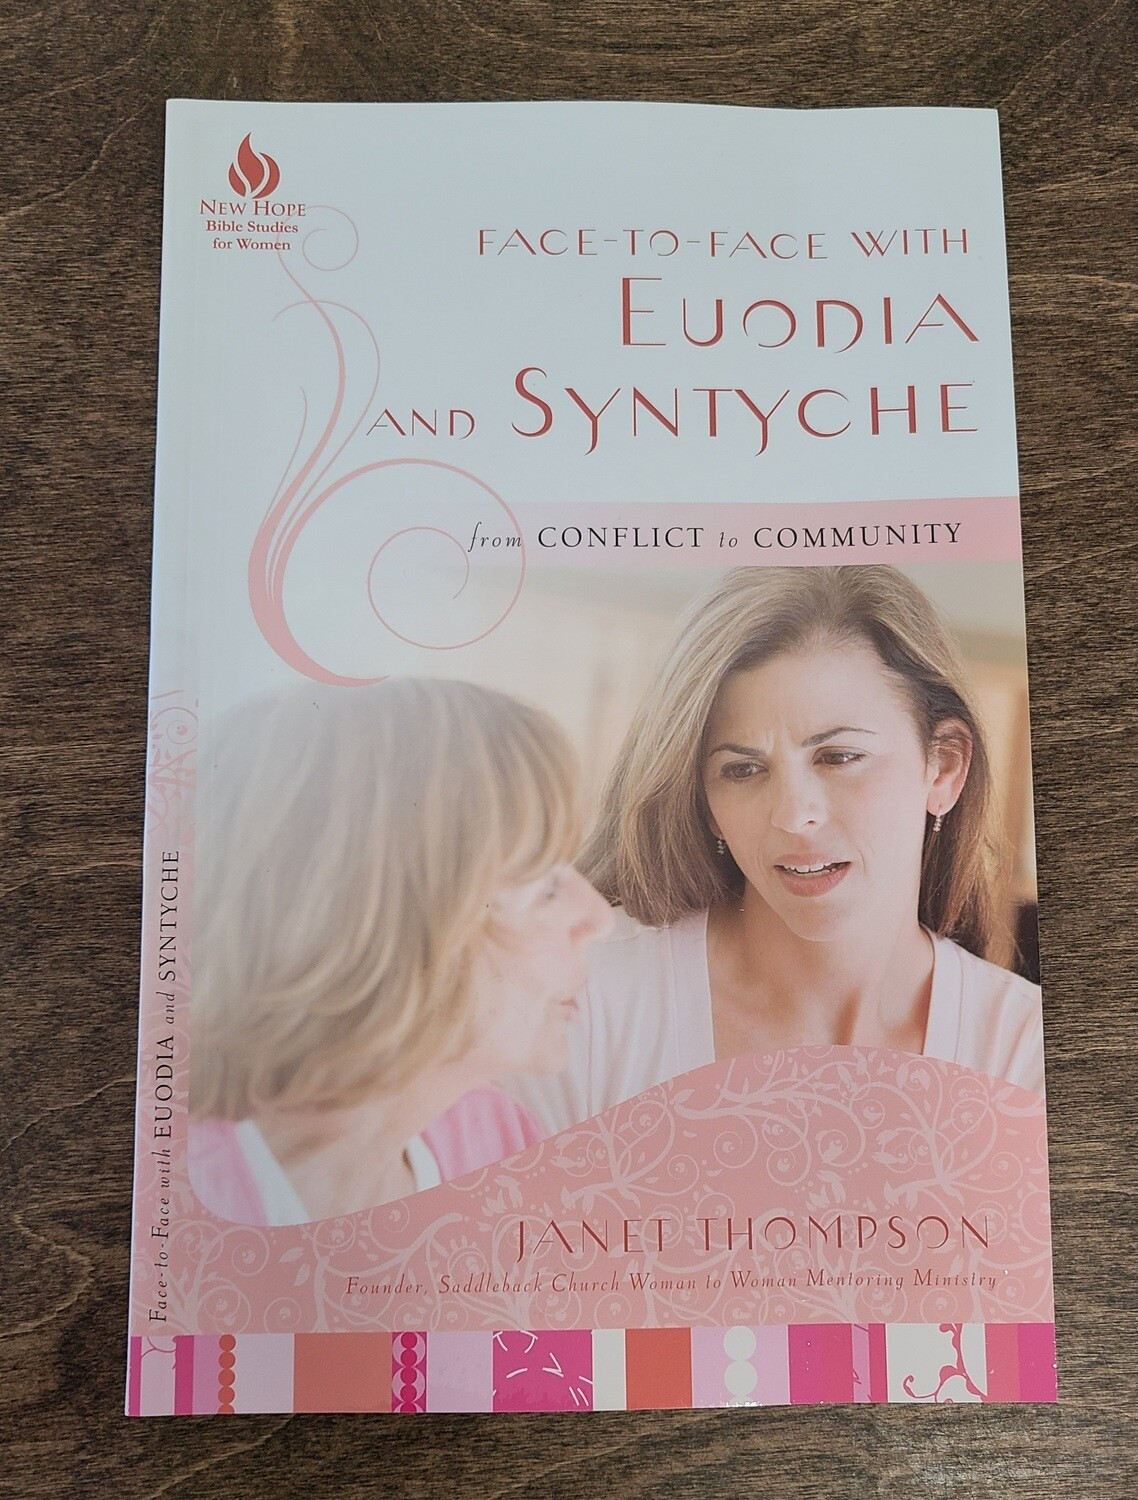 Face-To-Face with Euodia and Syntyche: From Conflict to Community by Janet Thompson